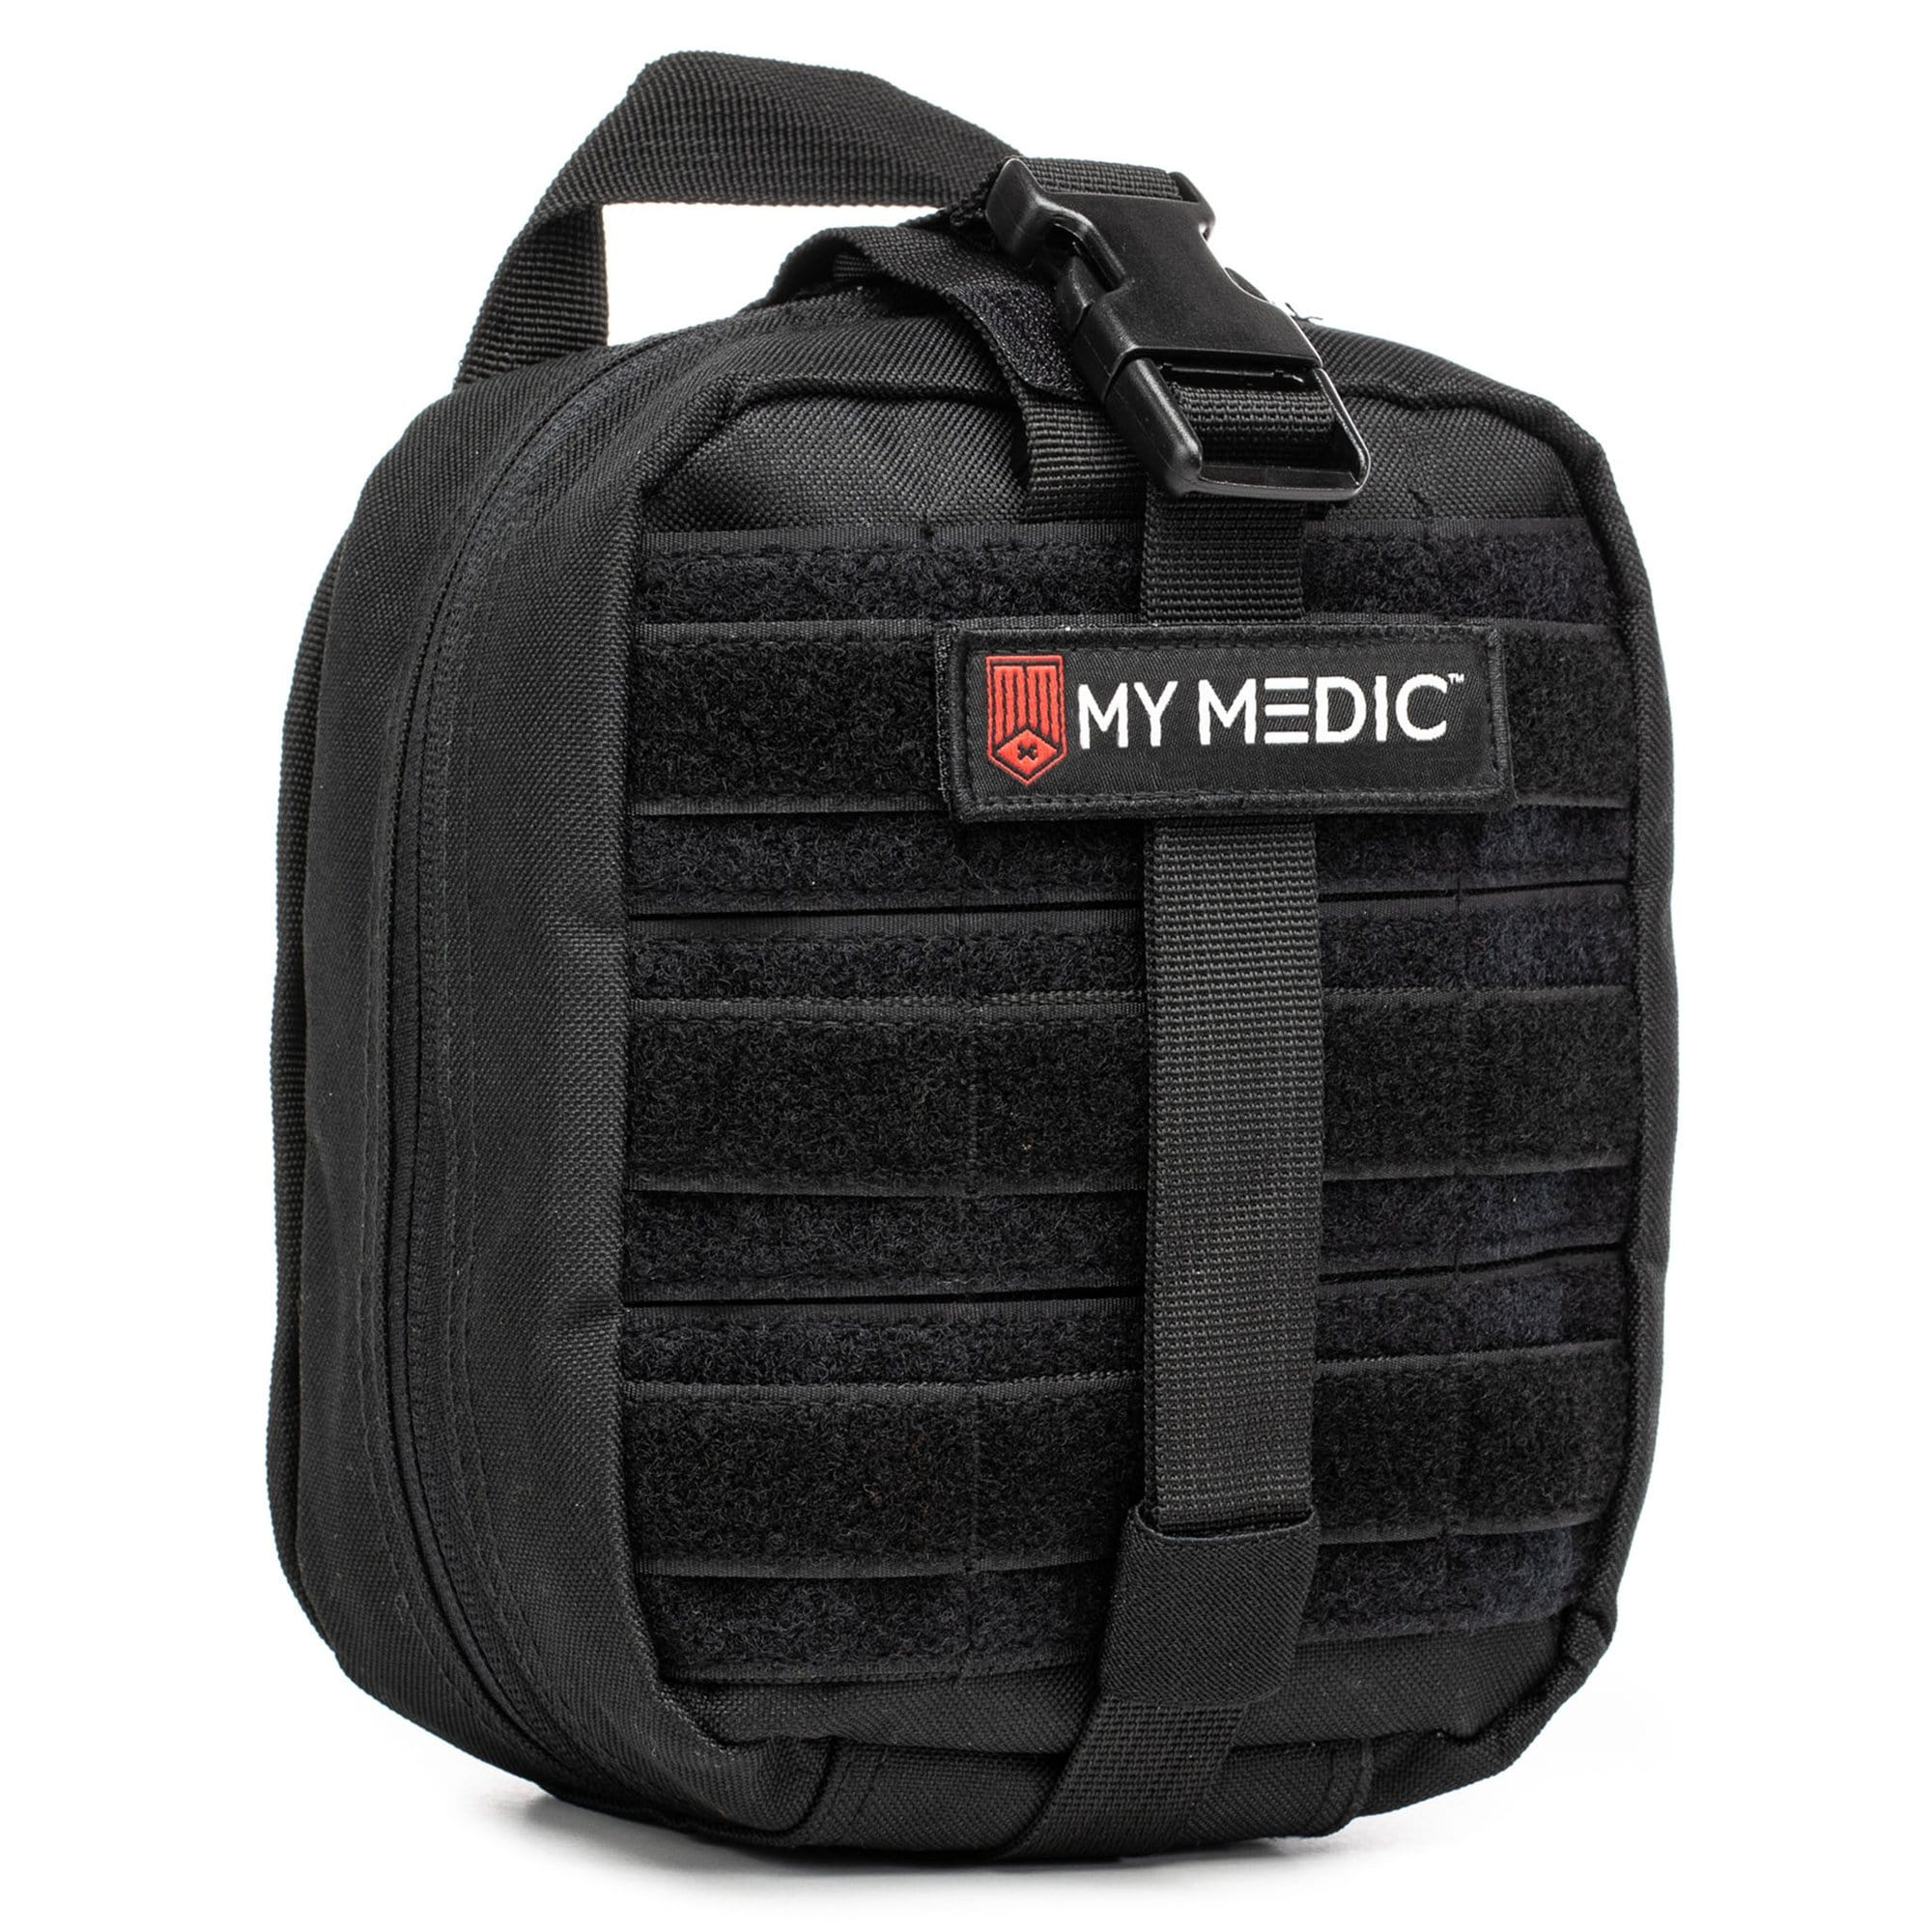 MyFAK: Basic Individual First Aid Kit [IFAK] by MyMedic (color: BLACK)